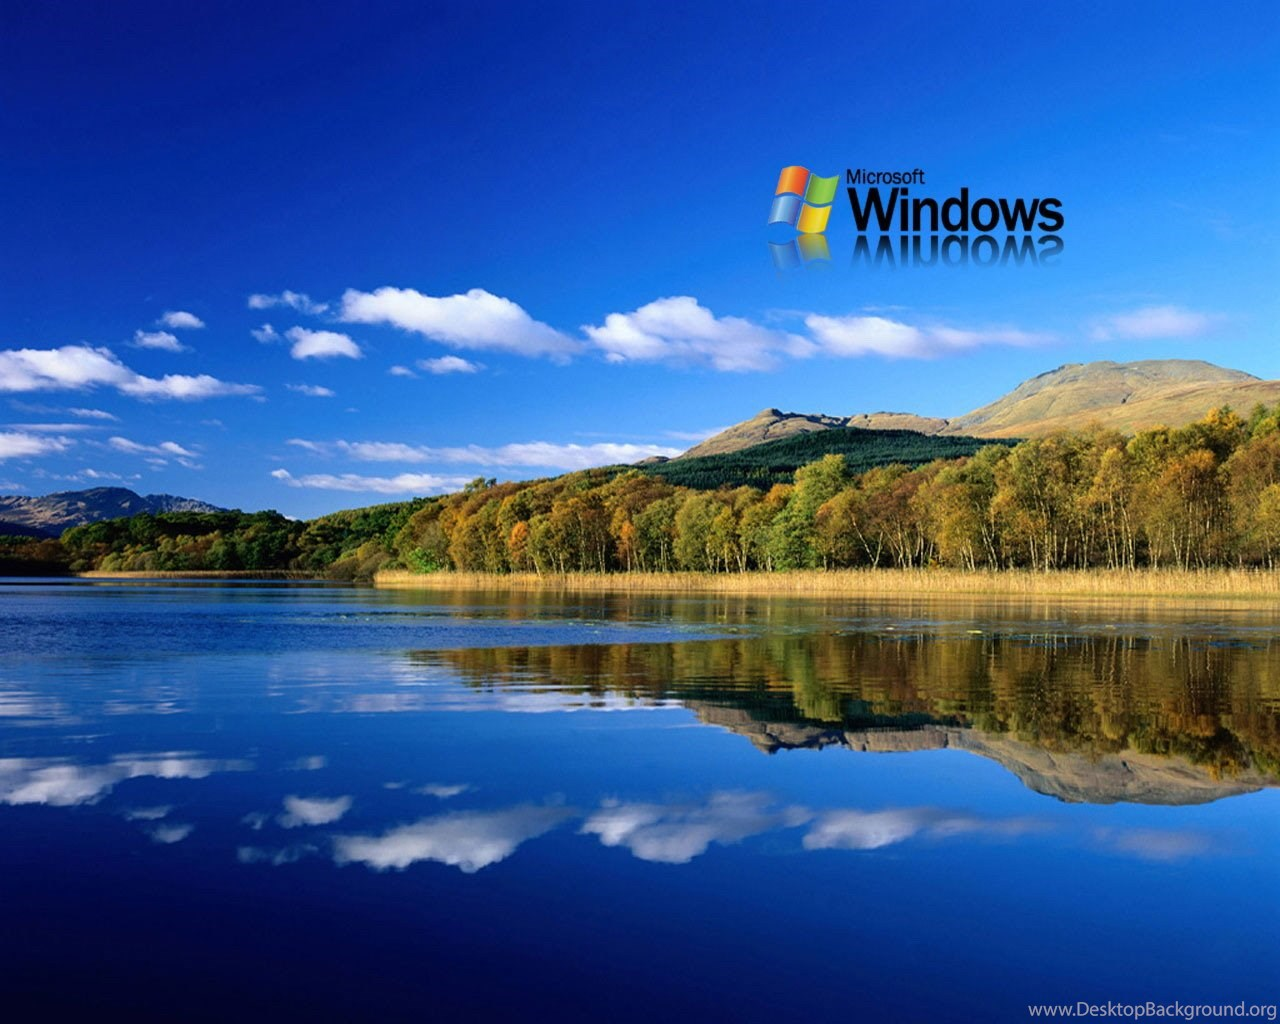 Windows vista wallpapers free screensavers themes backgrounds widescreen voltagebd Images